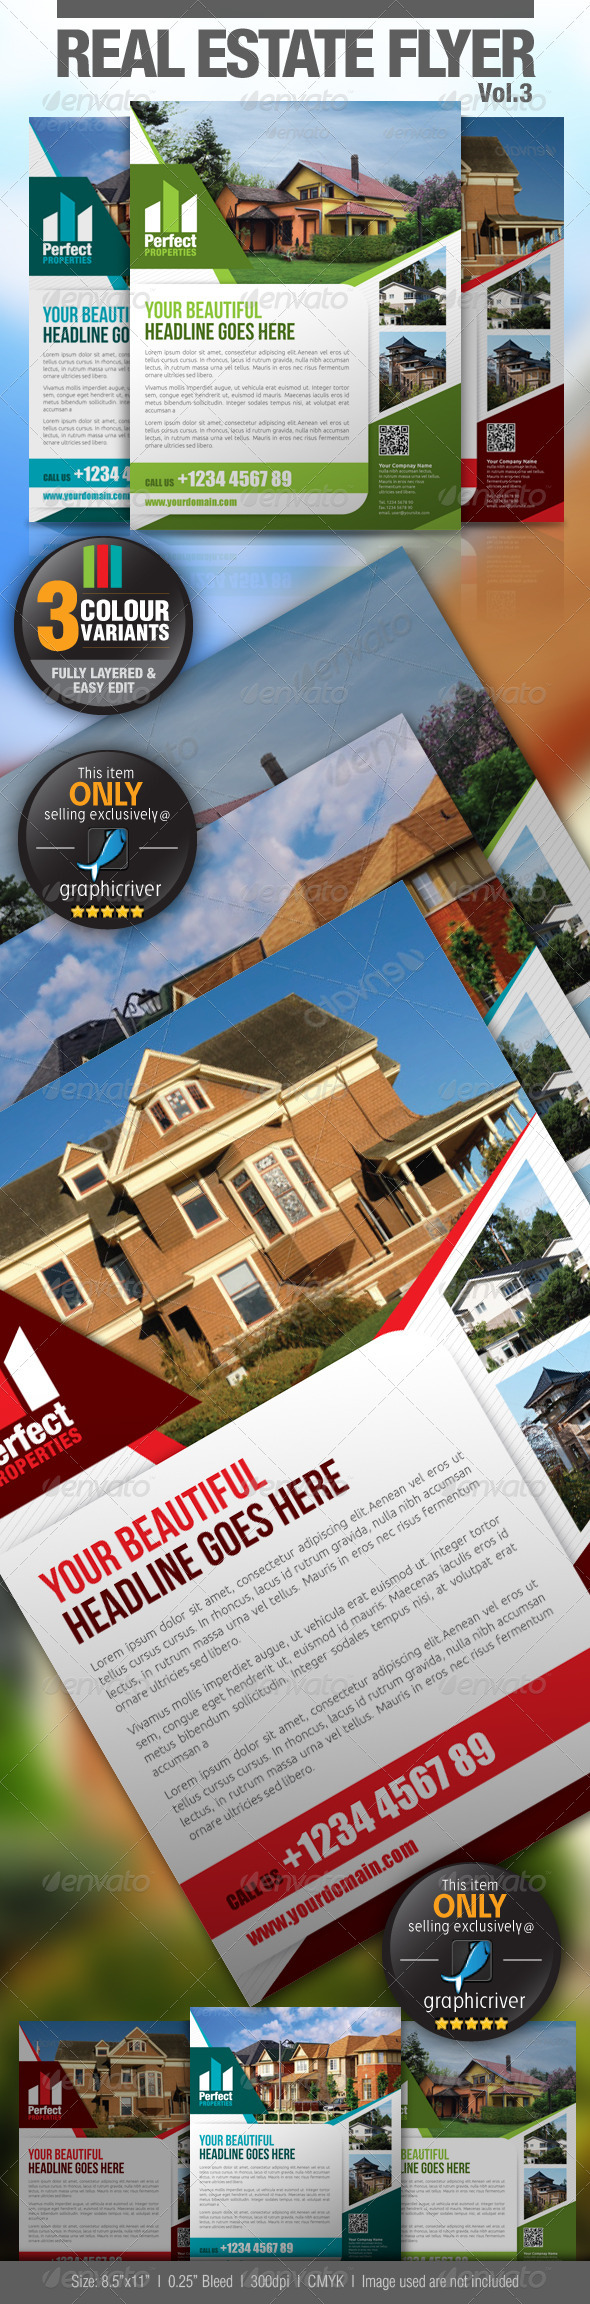 GraphicRiver Real Estate Flyer Vol.3 2794932